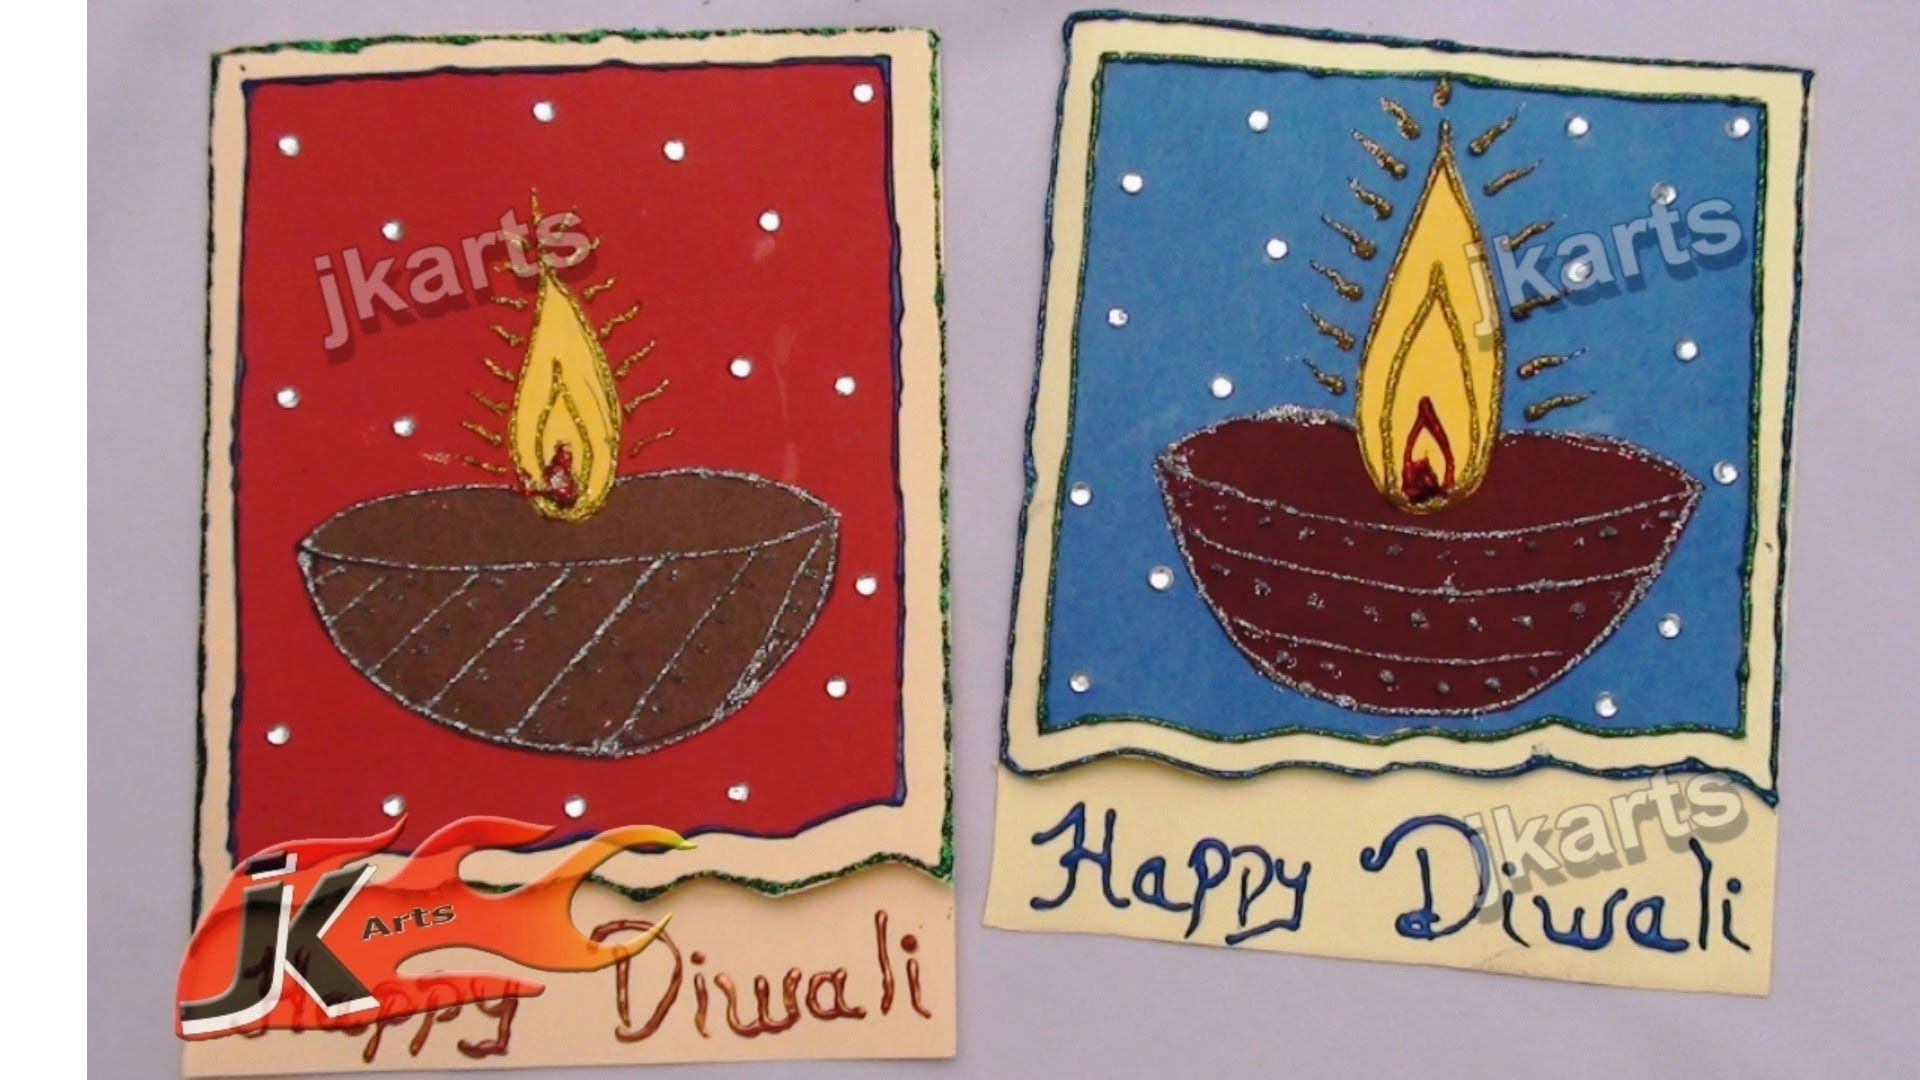 Diy how to make diwali greeting card school project for kids jk diy how to make diwali greeting card school project for kids jk arts kristyandbryce Gallery